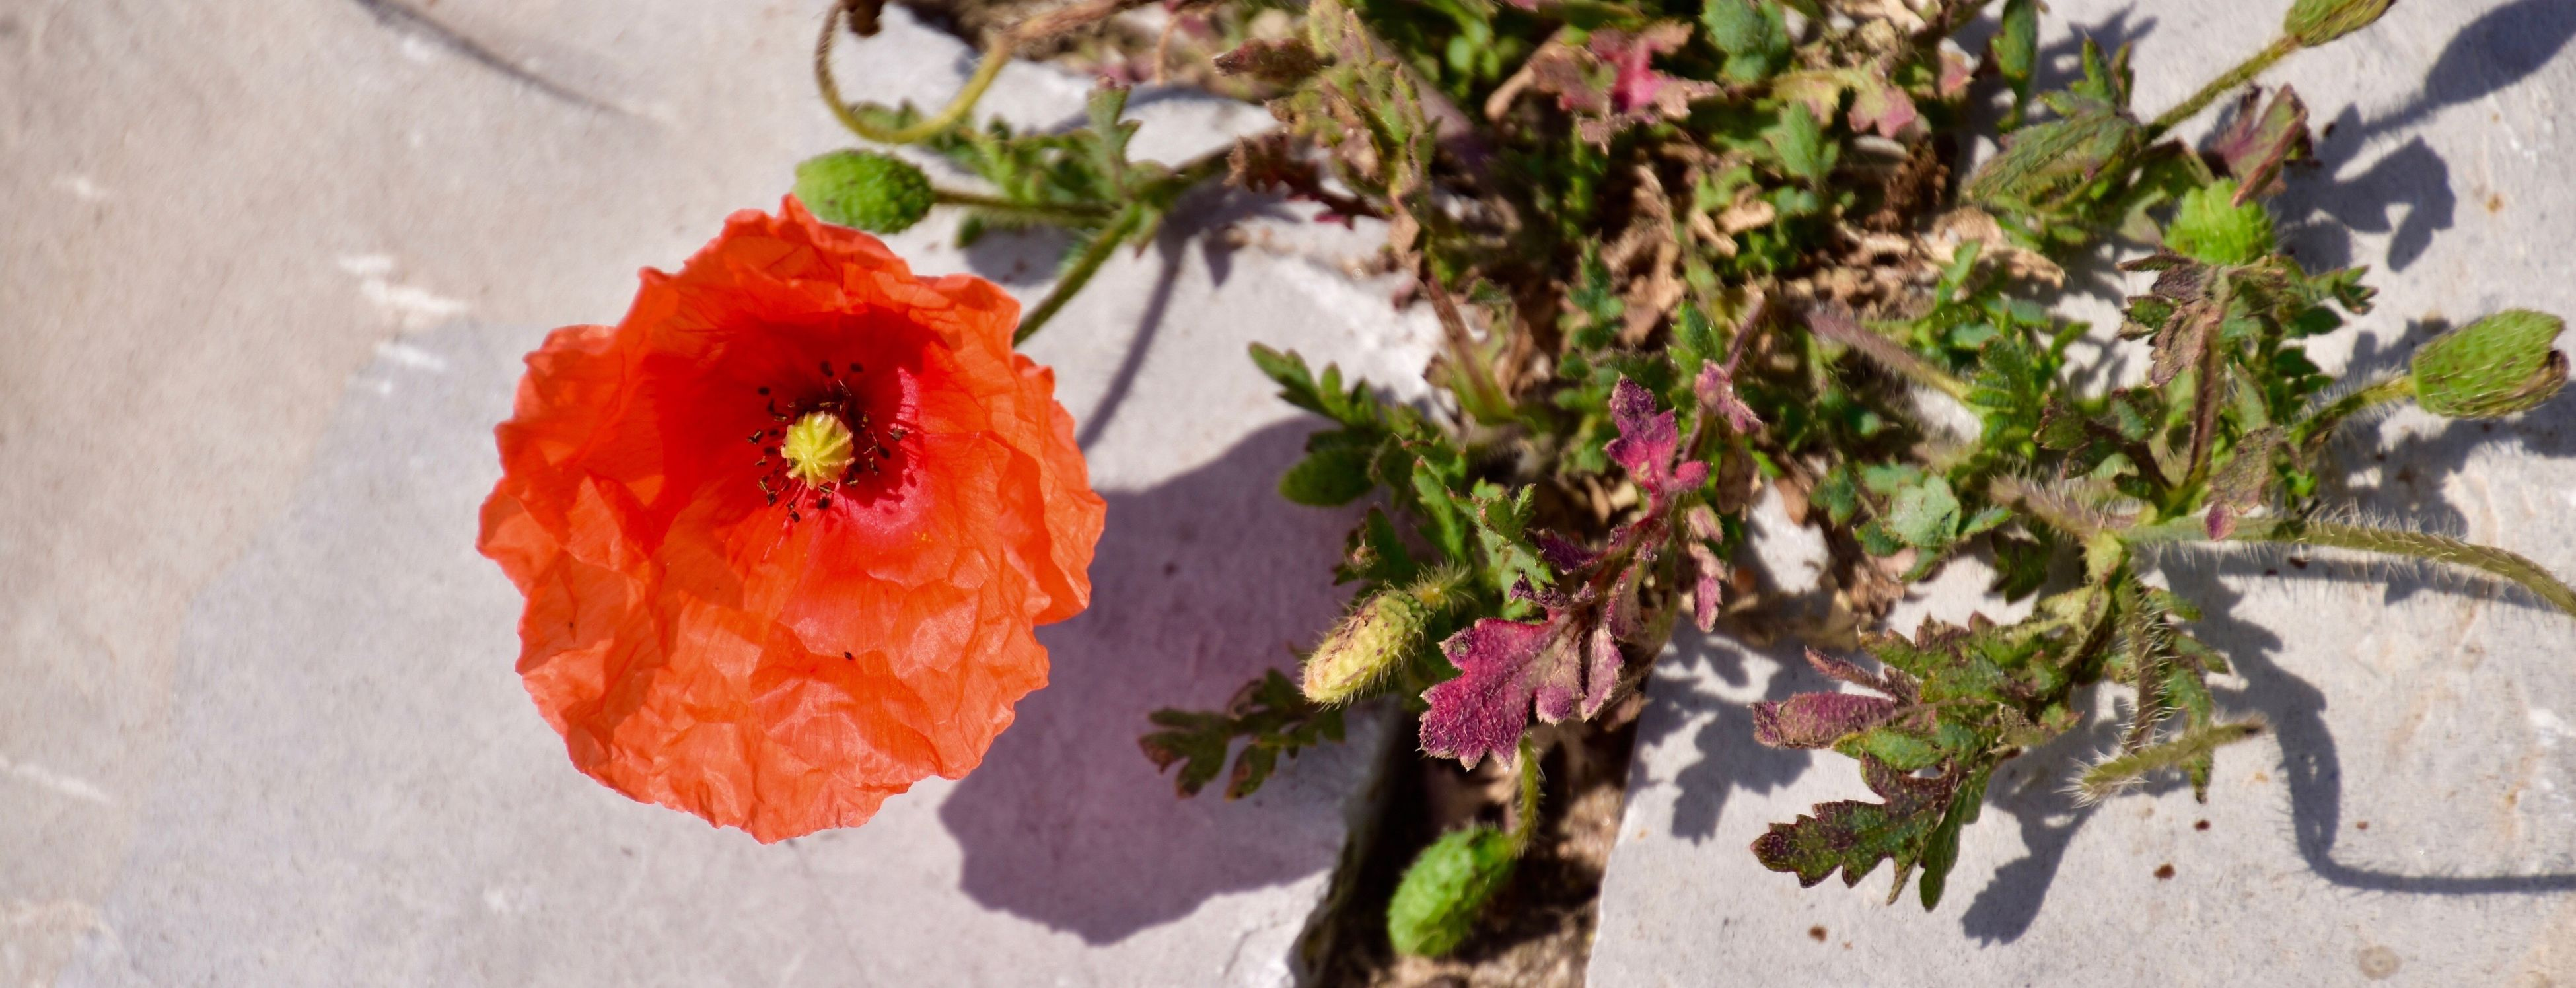 Flower Fragility Petal Nature Poppy Plant Flower Head Growth Beauty In Nature Outdoors Day No People Freshness Leaf Red Springtime Close-up Hibiscus Mohnblume Sagres, Algarve